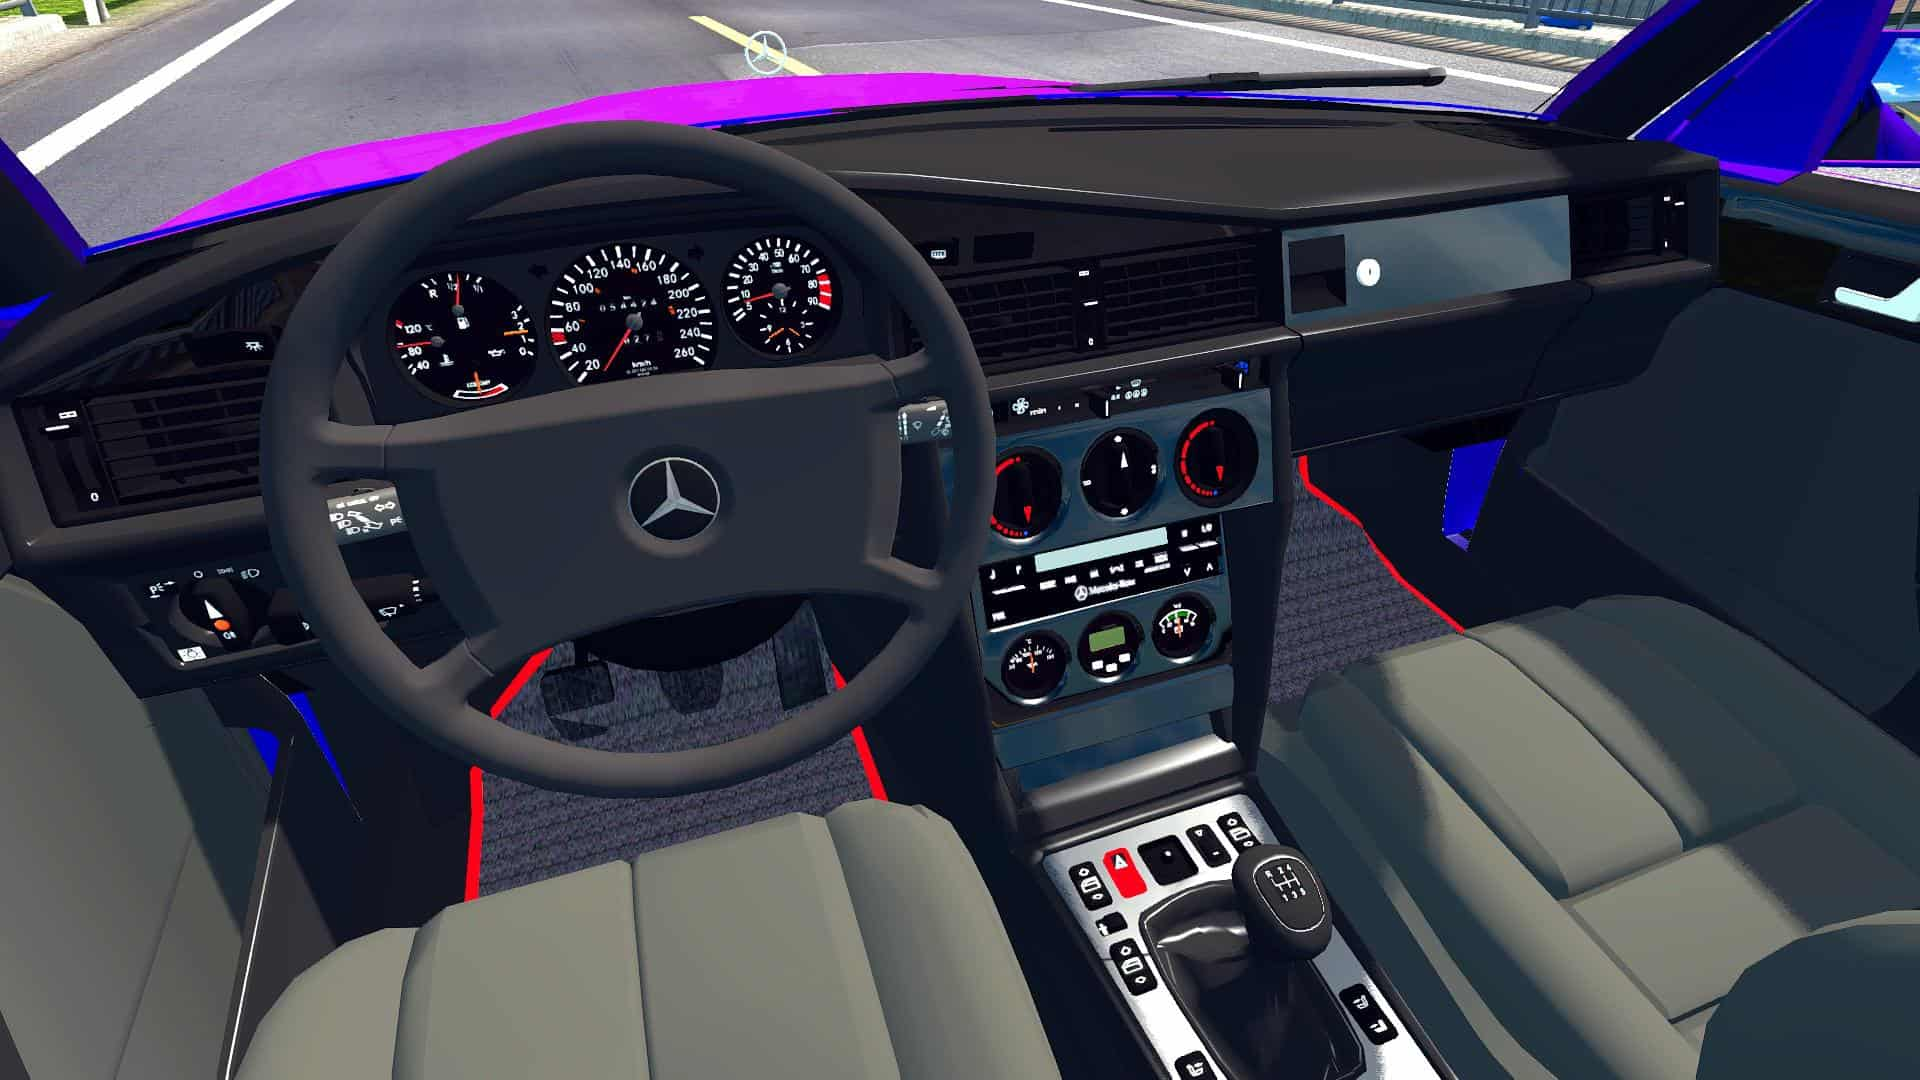 Mercedes Benz 190e Ets2 1 34 Fix Car Mod Ets2 Mod